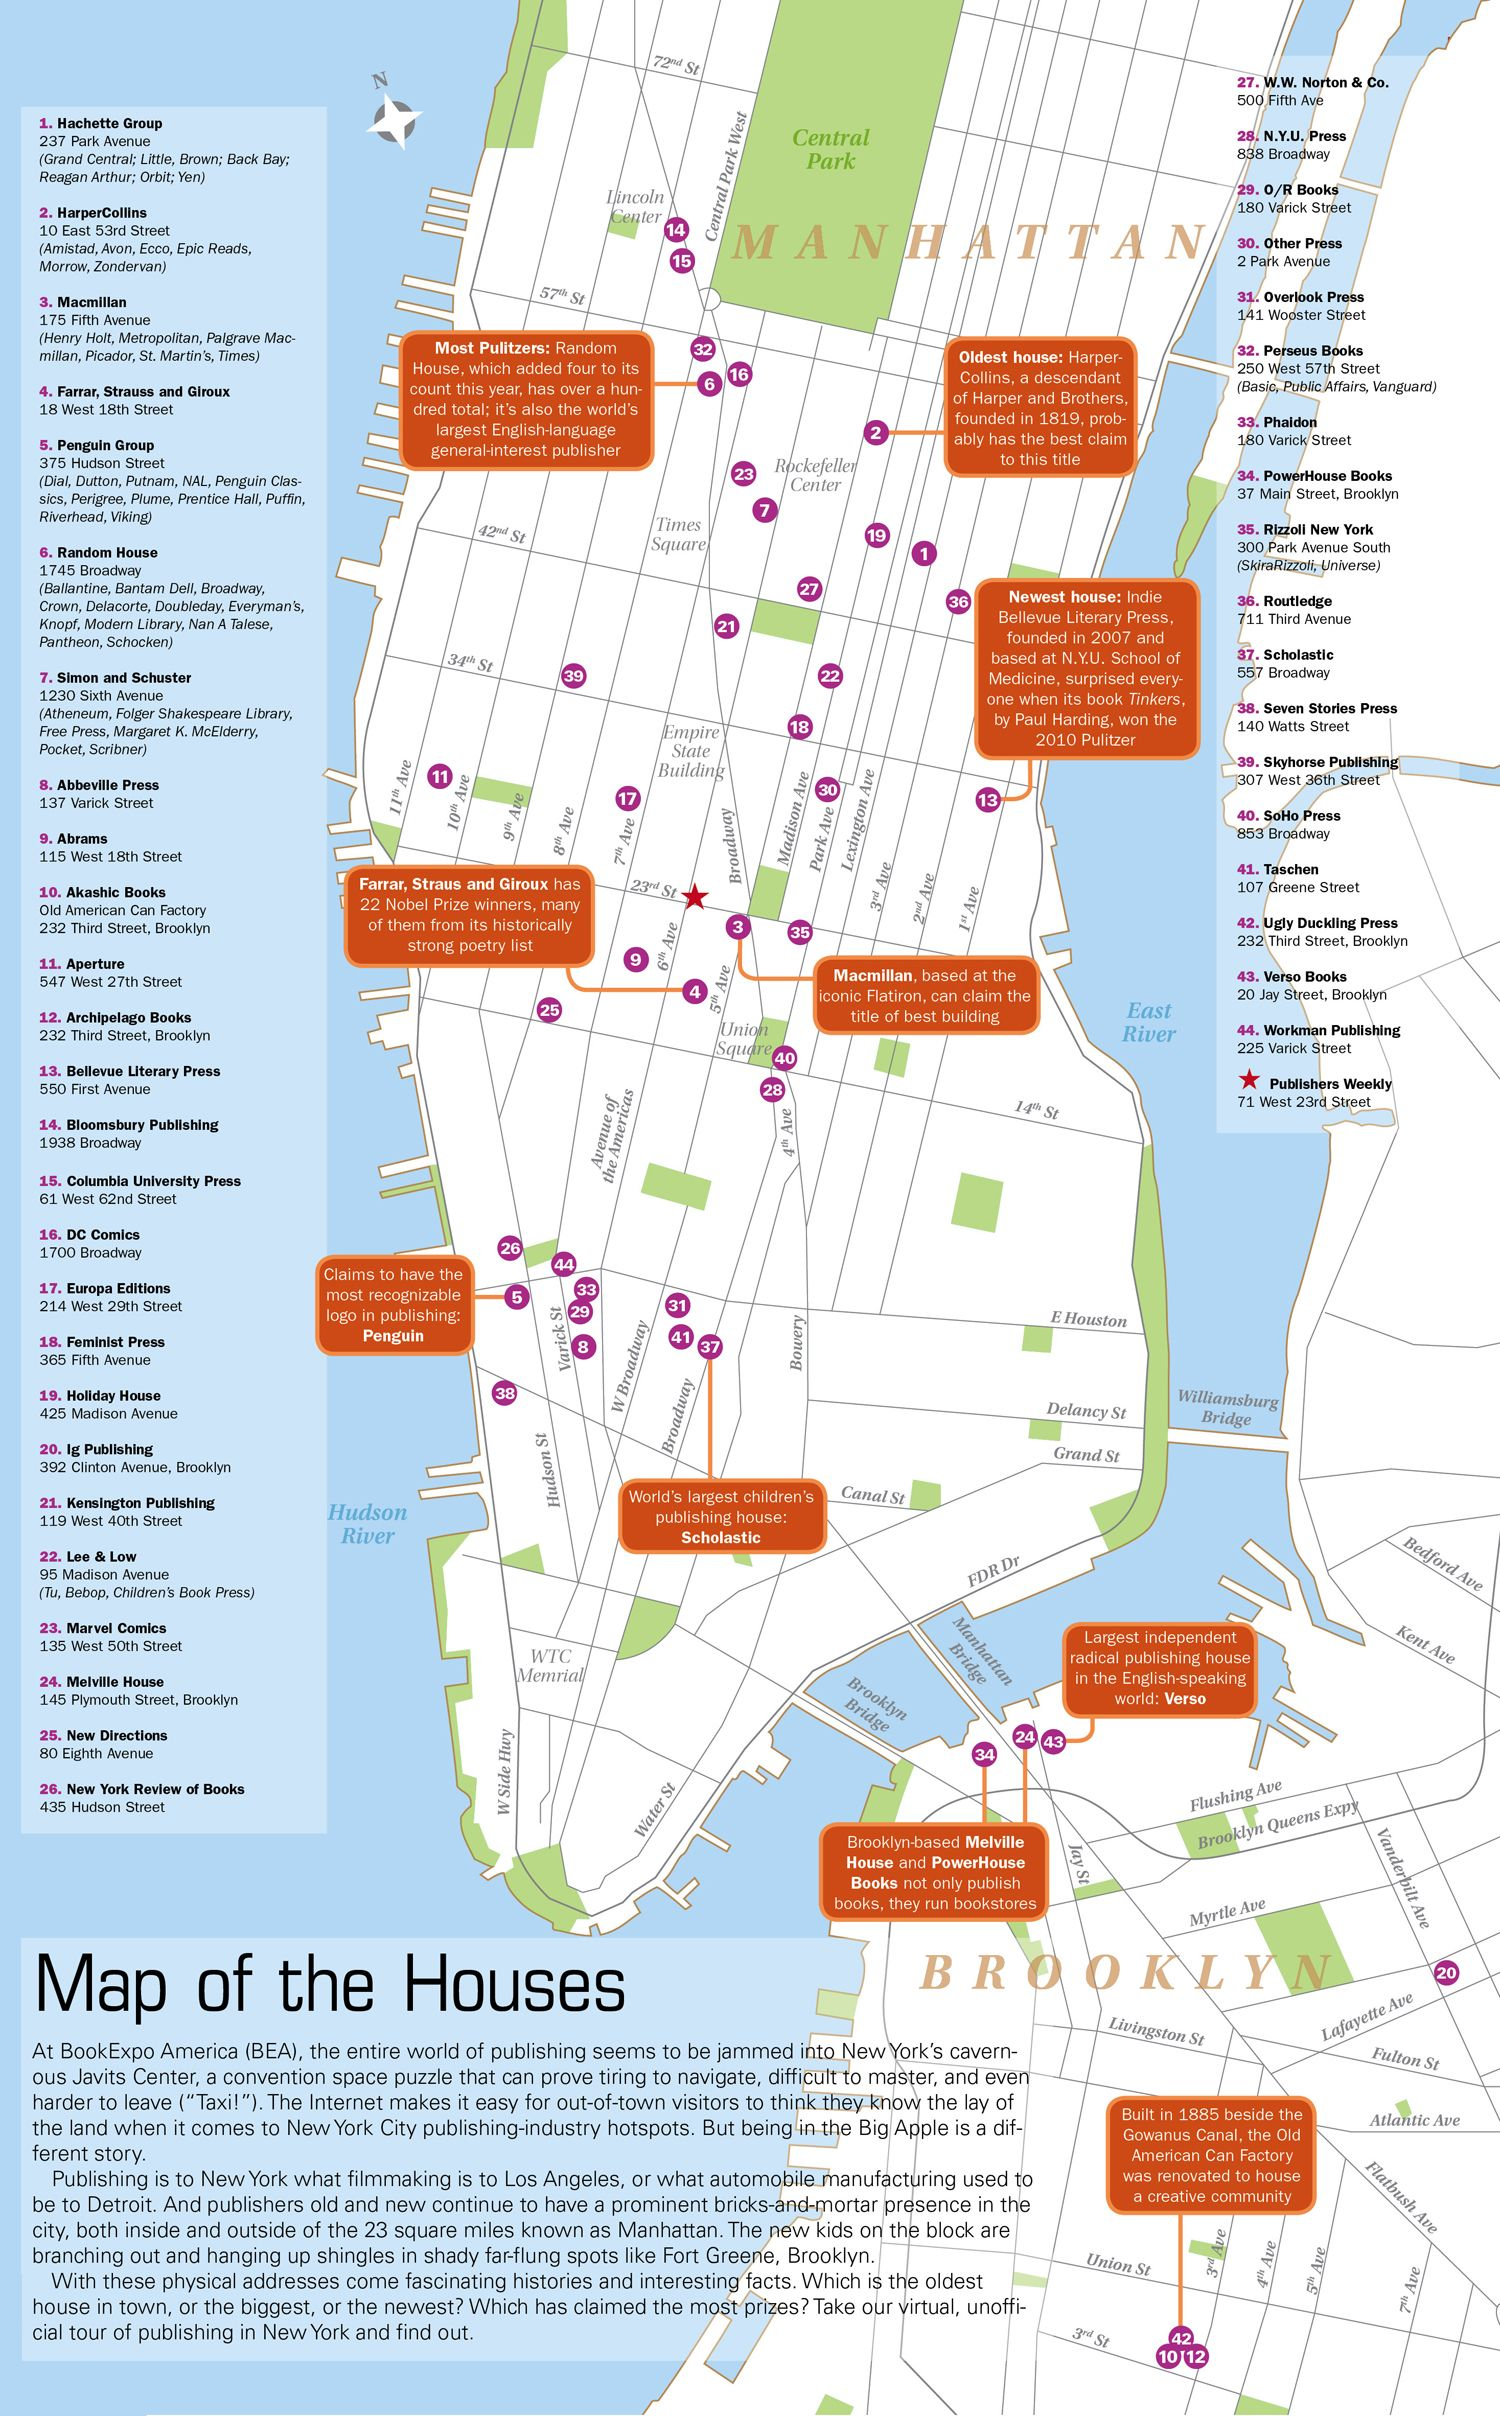 Publishers Weekly Map of NYC Publishing Houses